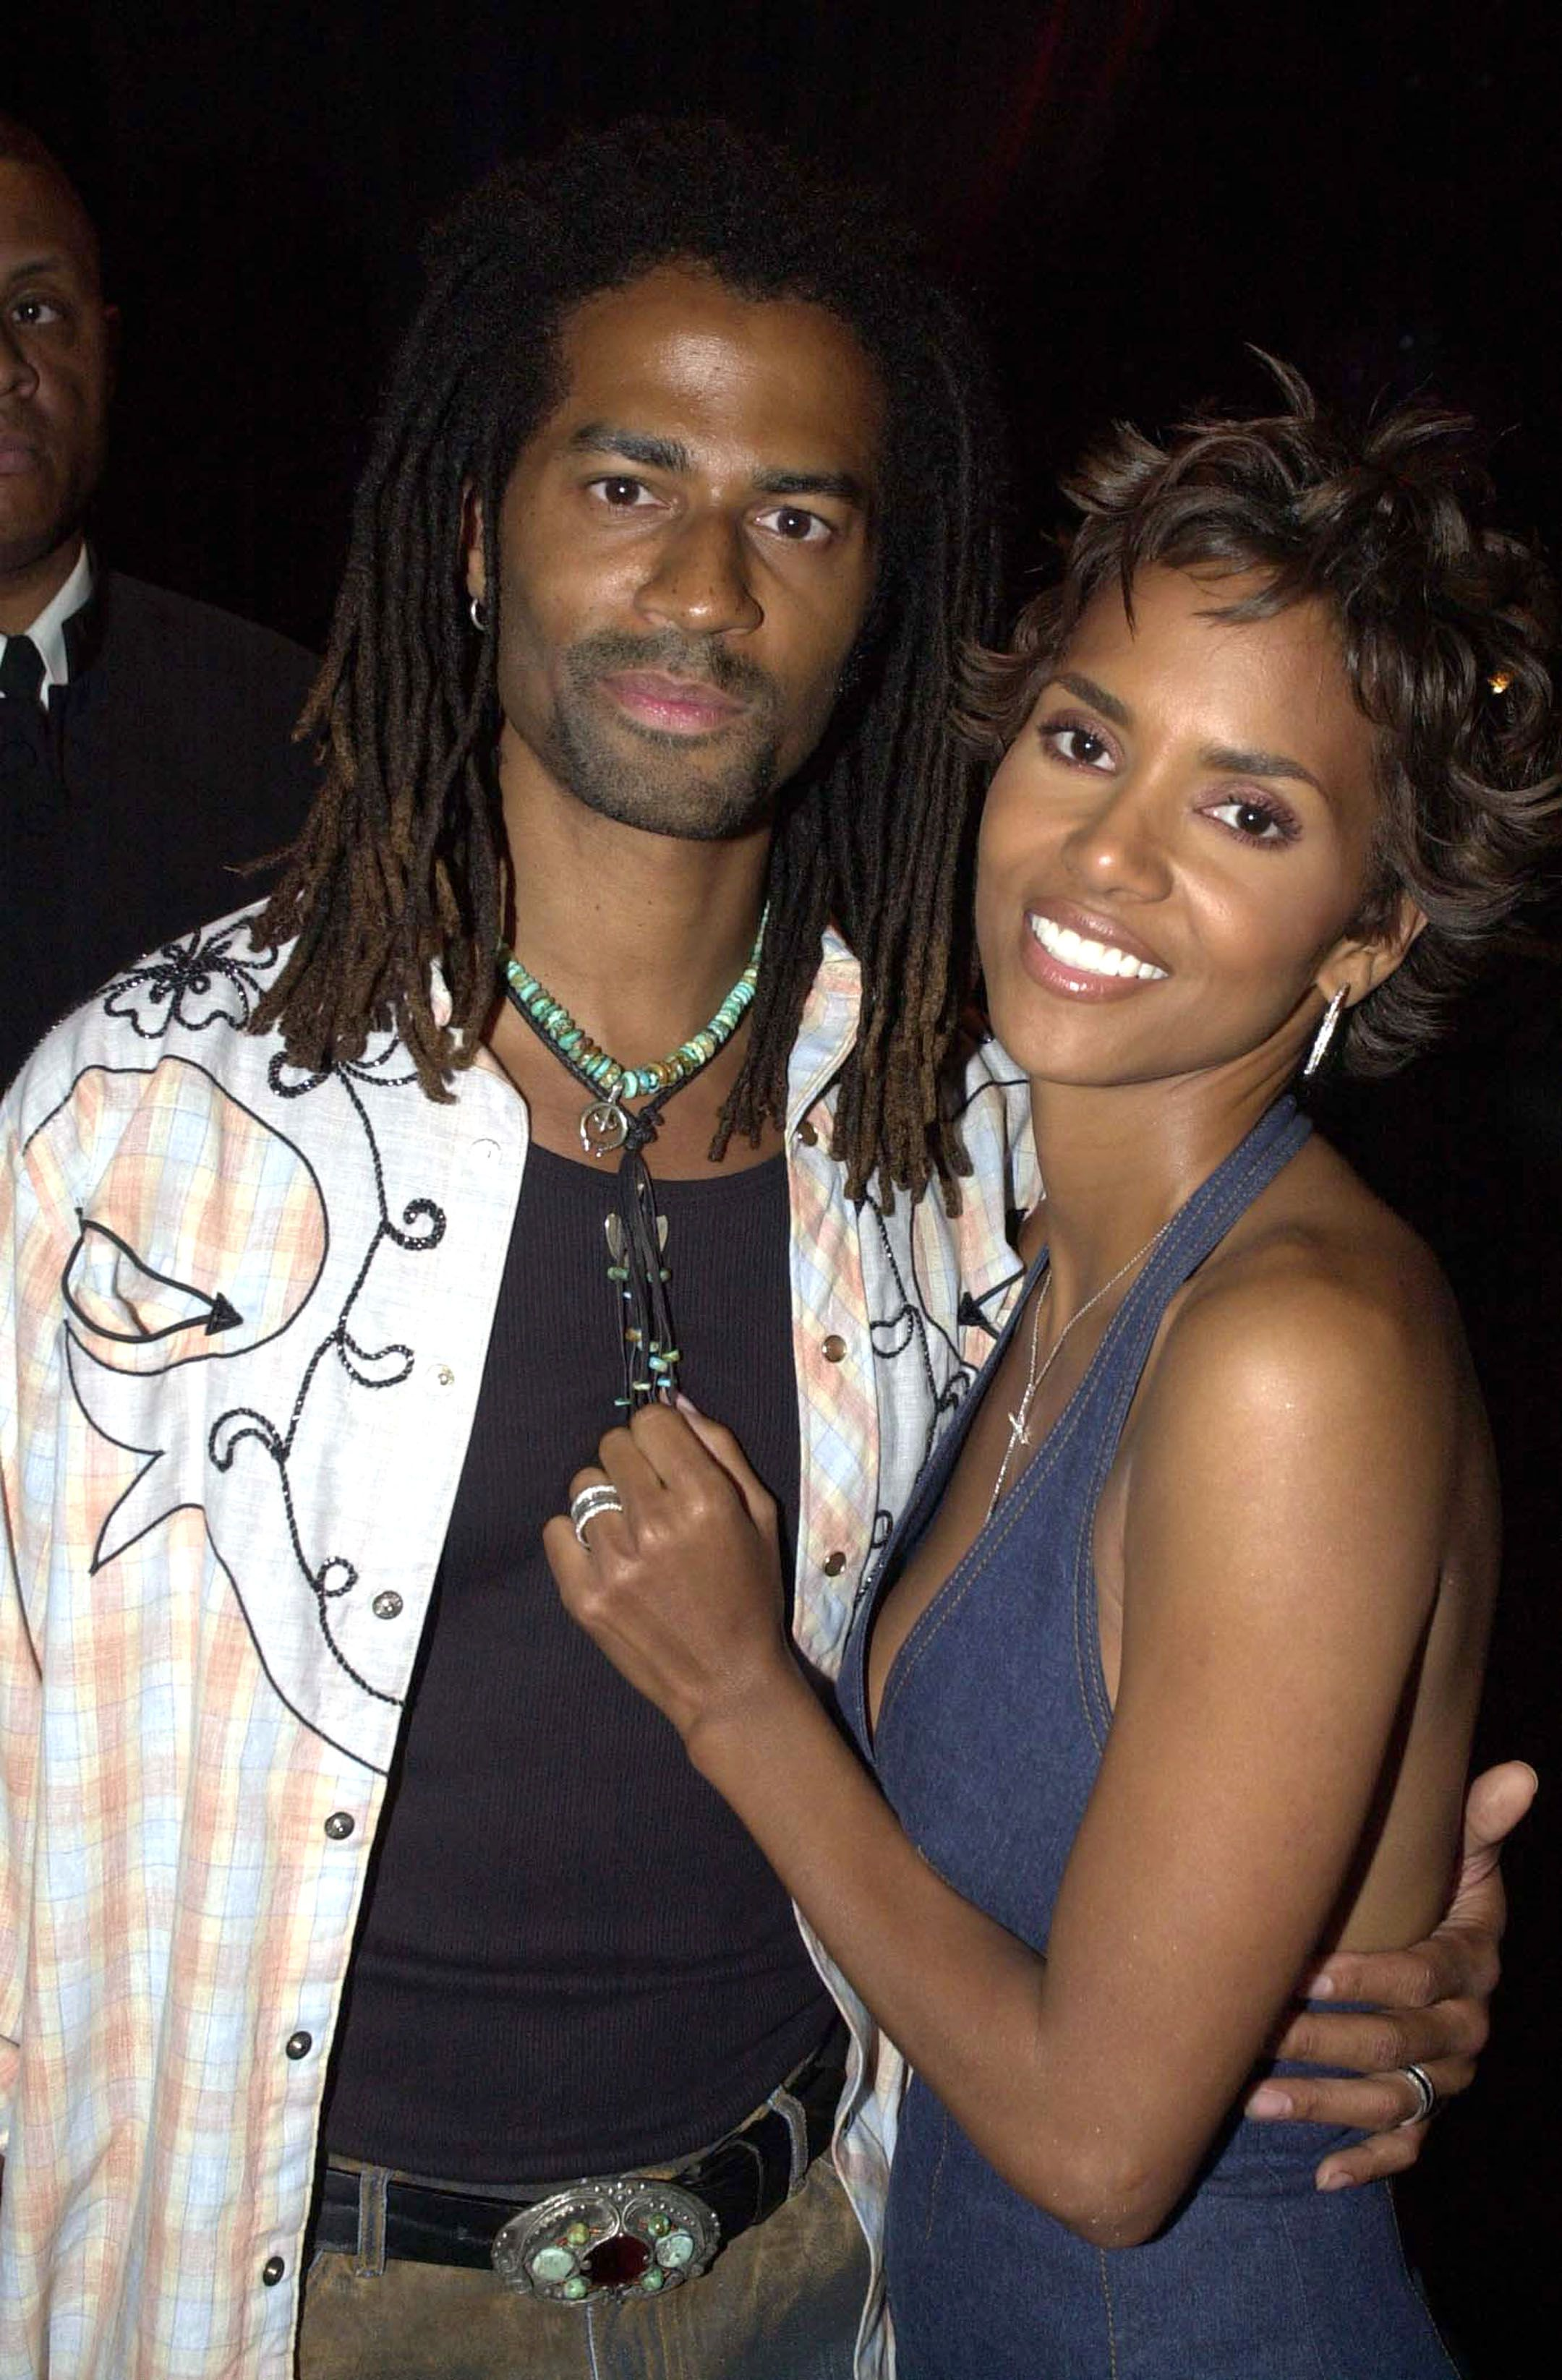 Halle Berry with ex-husband Eric Benet at an event | Source: Getty Images